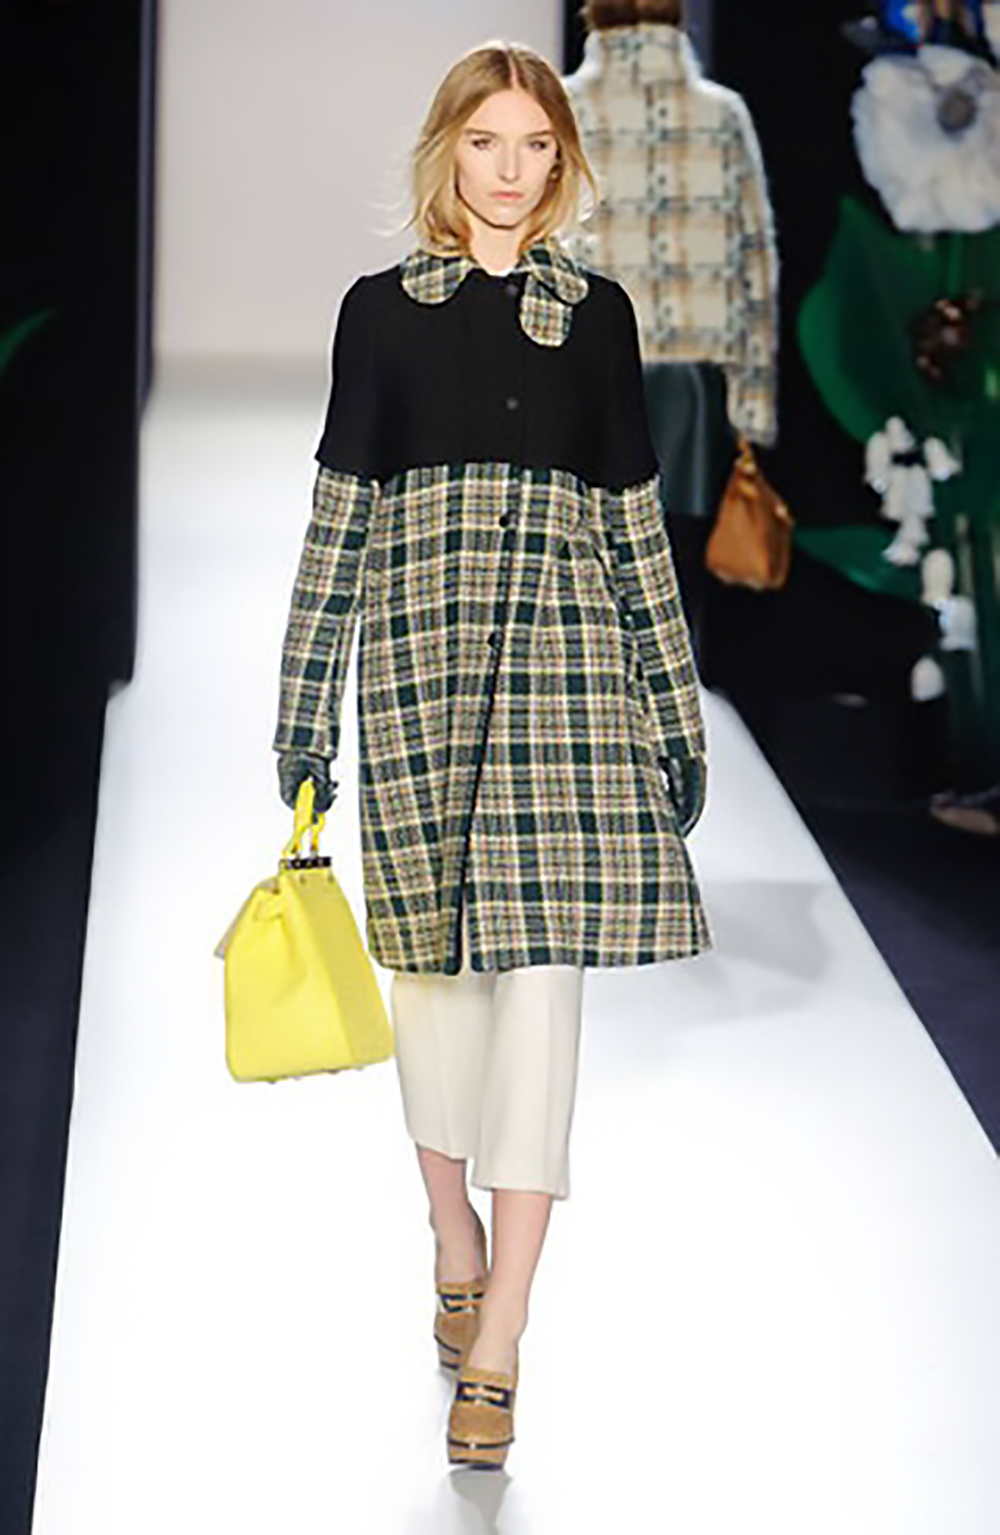 elle.com plaid fall 2013 runway mulberry mad for plaid 1500.jpg